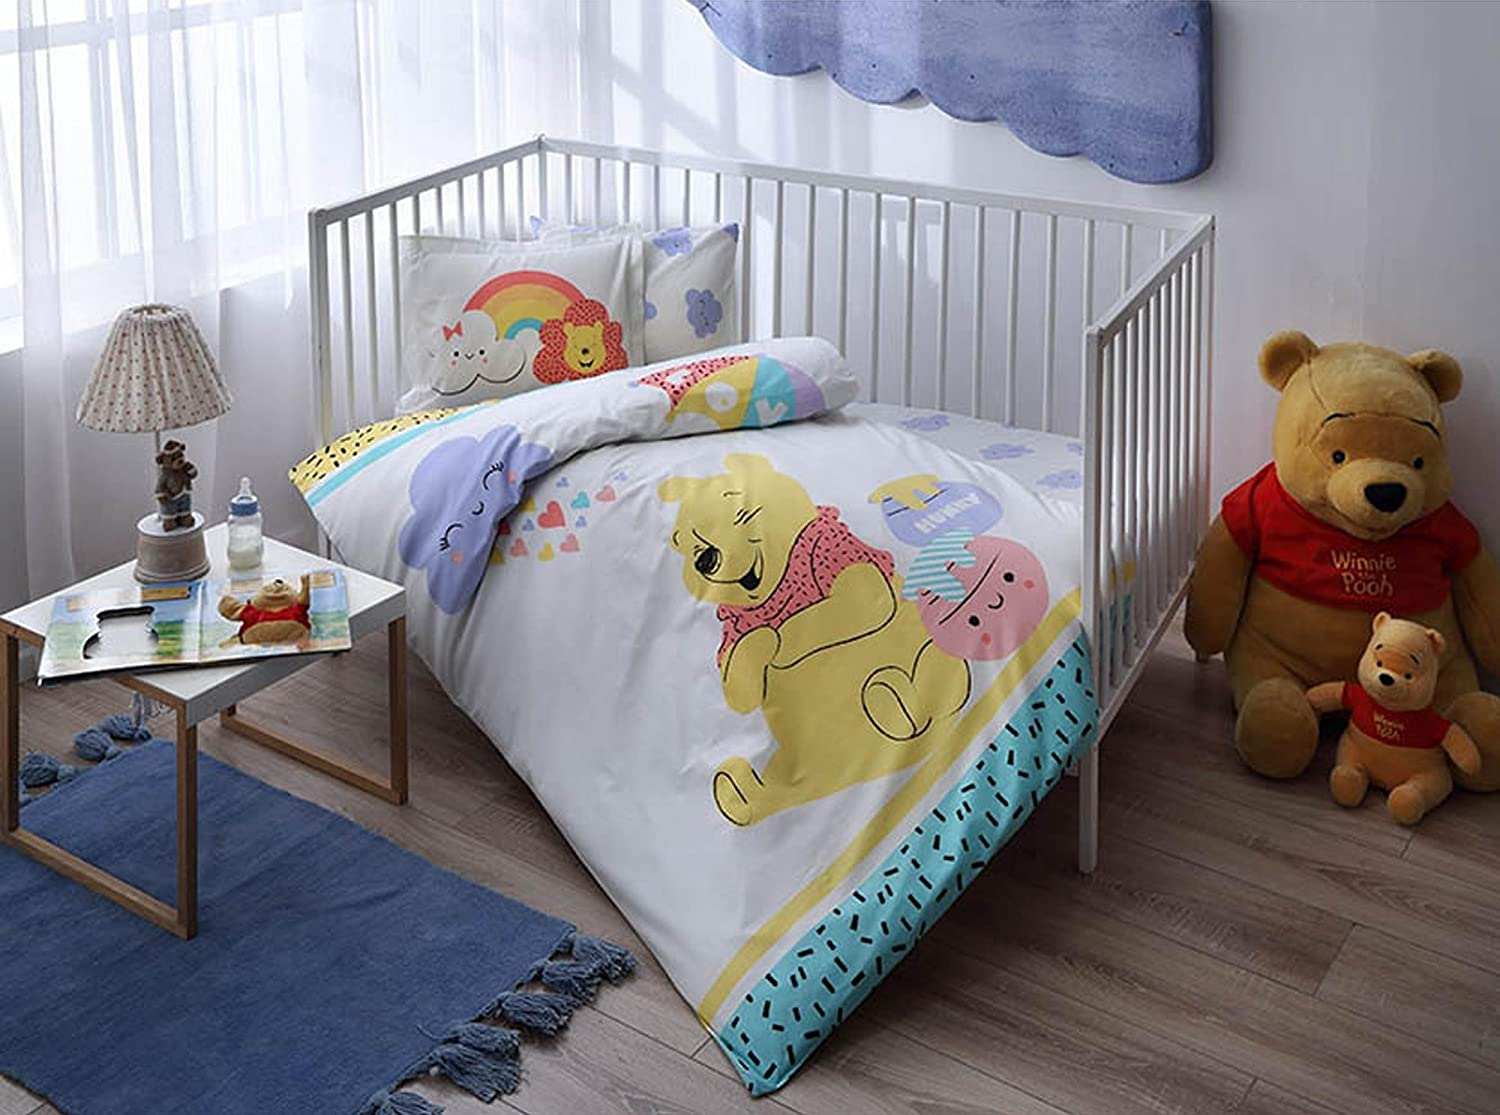 100% Organic Cotton Soft and Healthy Baby Crib Bed Duvet Cover Set 4 Pieces, Winnie The Pooh Hunny Baby Bedding Set TAC